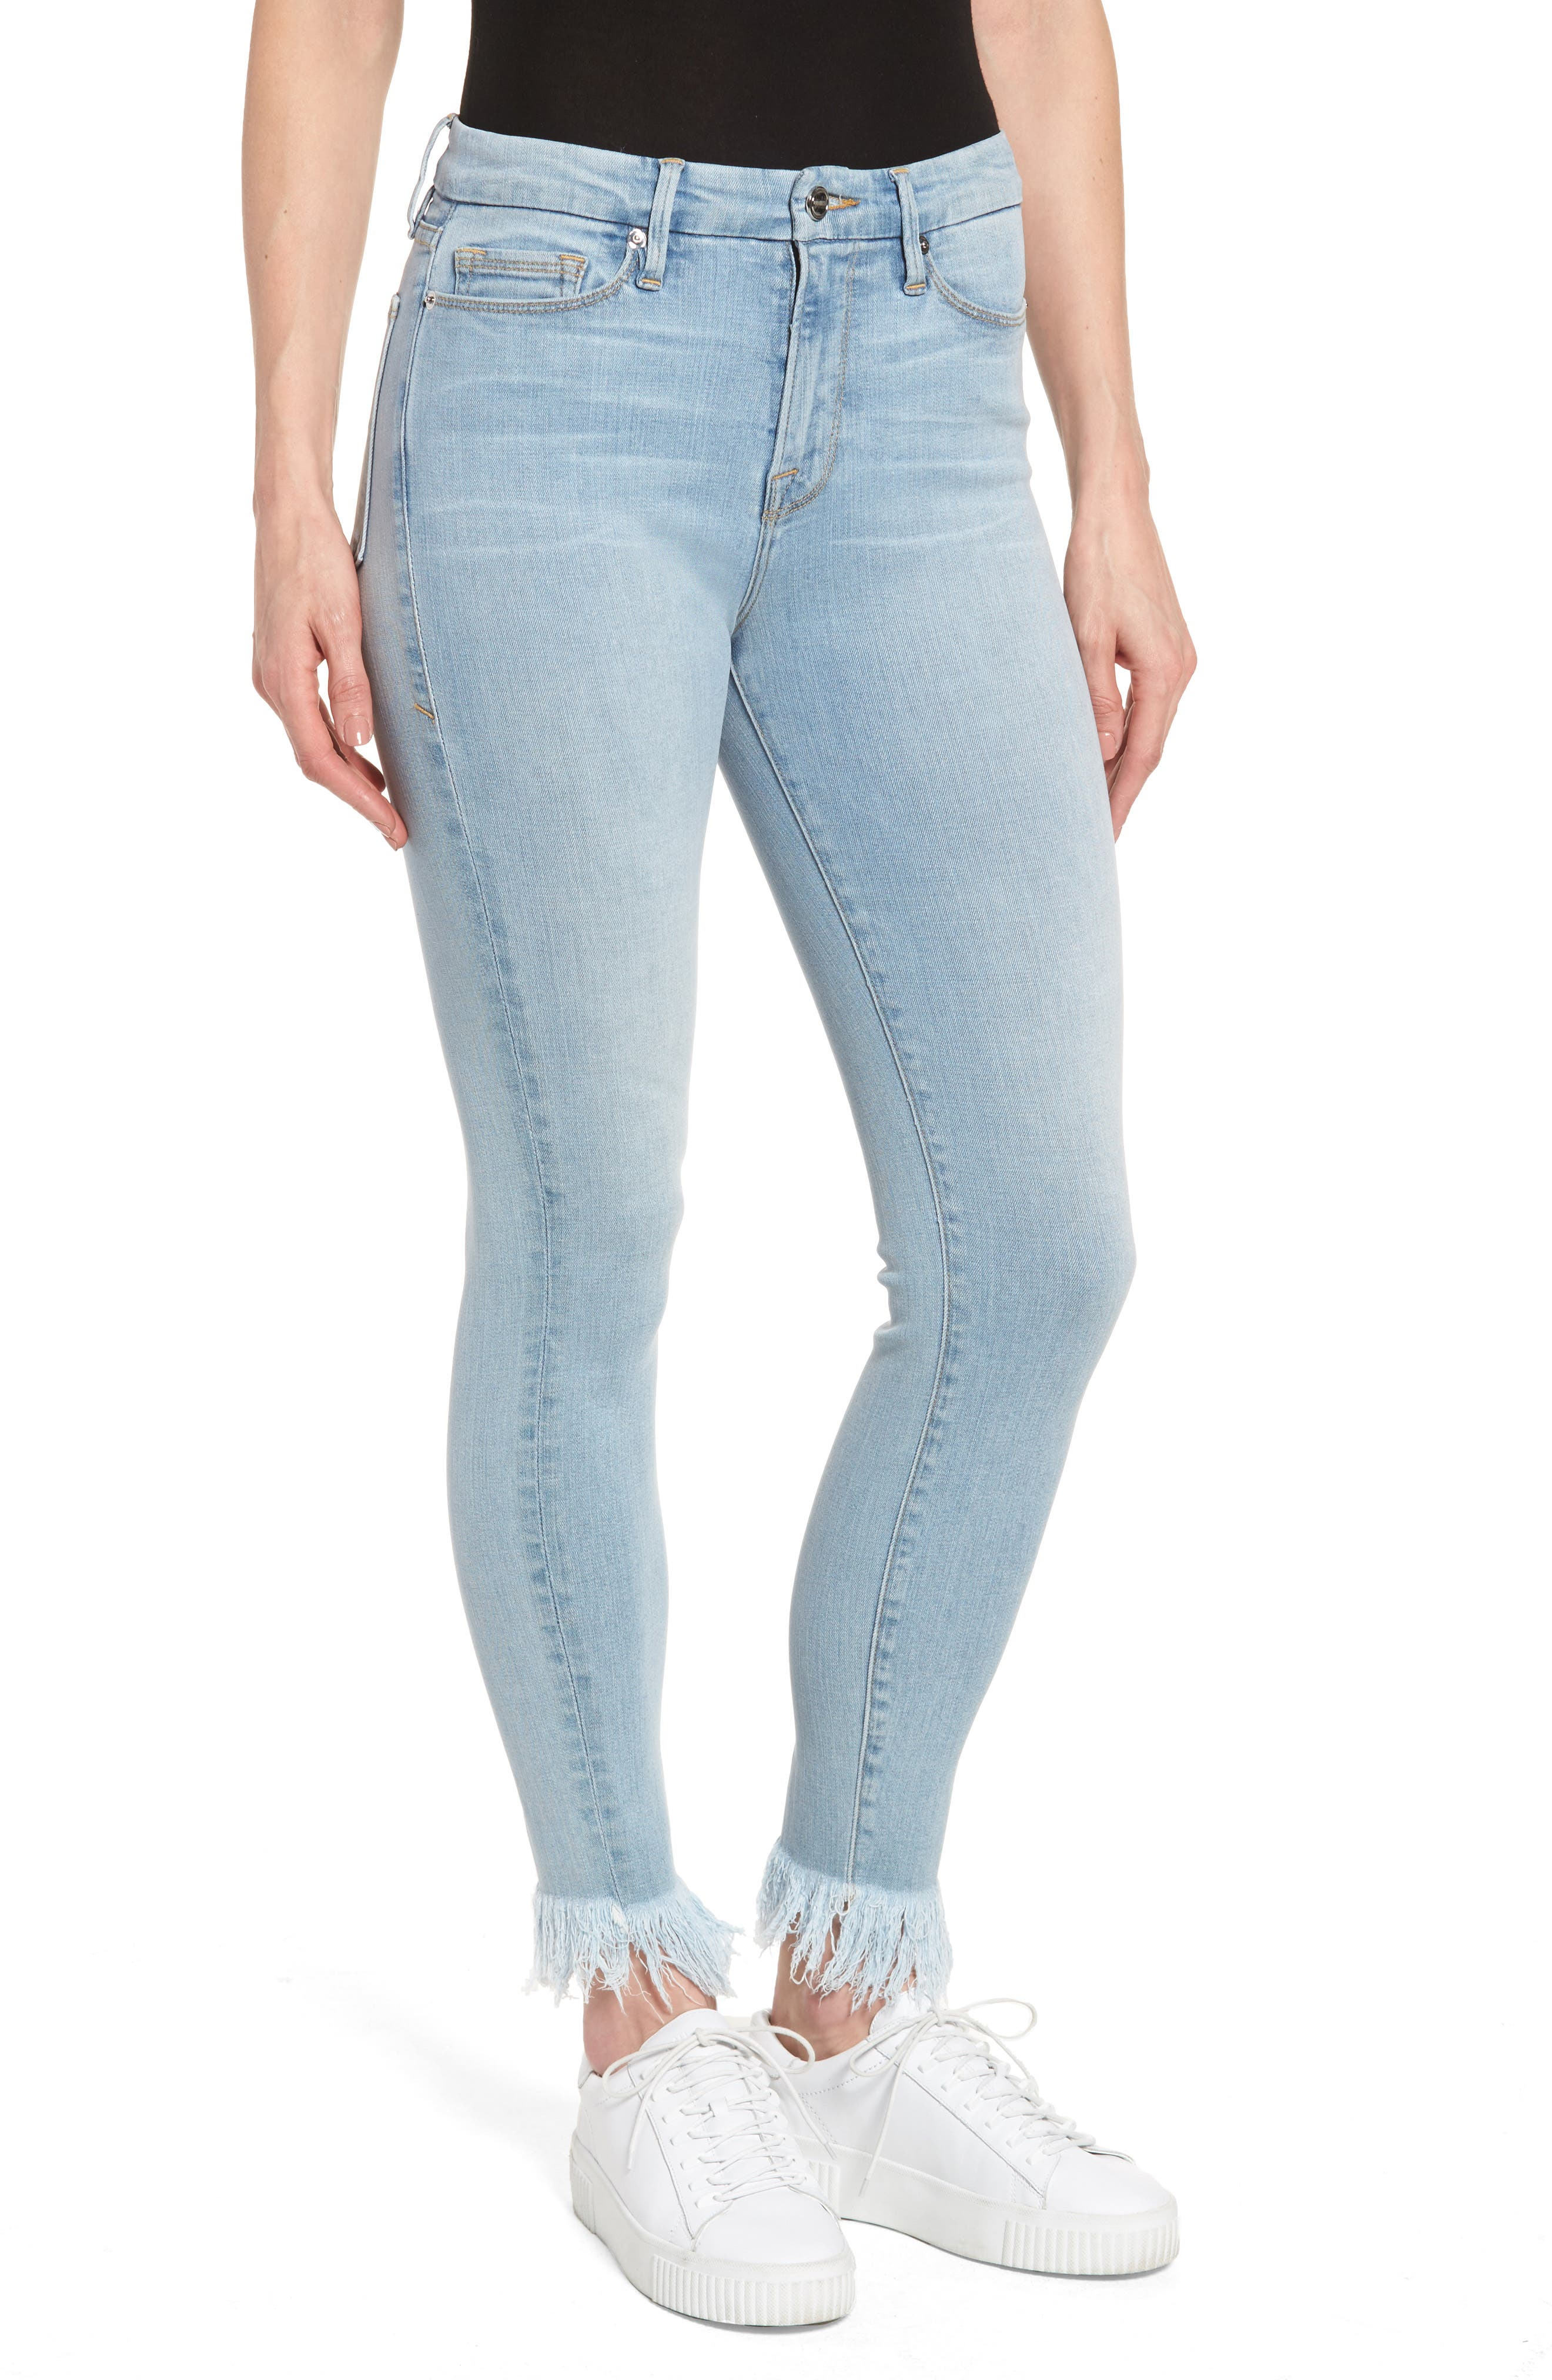 Main Image - Good American Good Waist High Waist Frayed Ankle Skinny Jeans (Blue 054) (Extended Sizes)